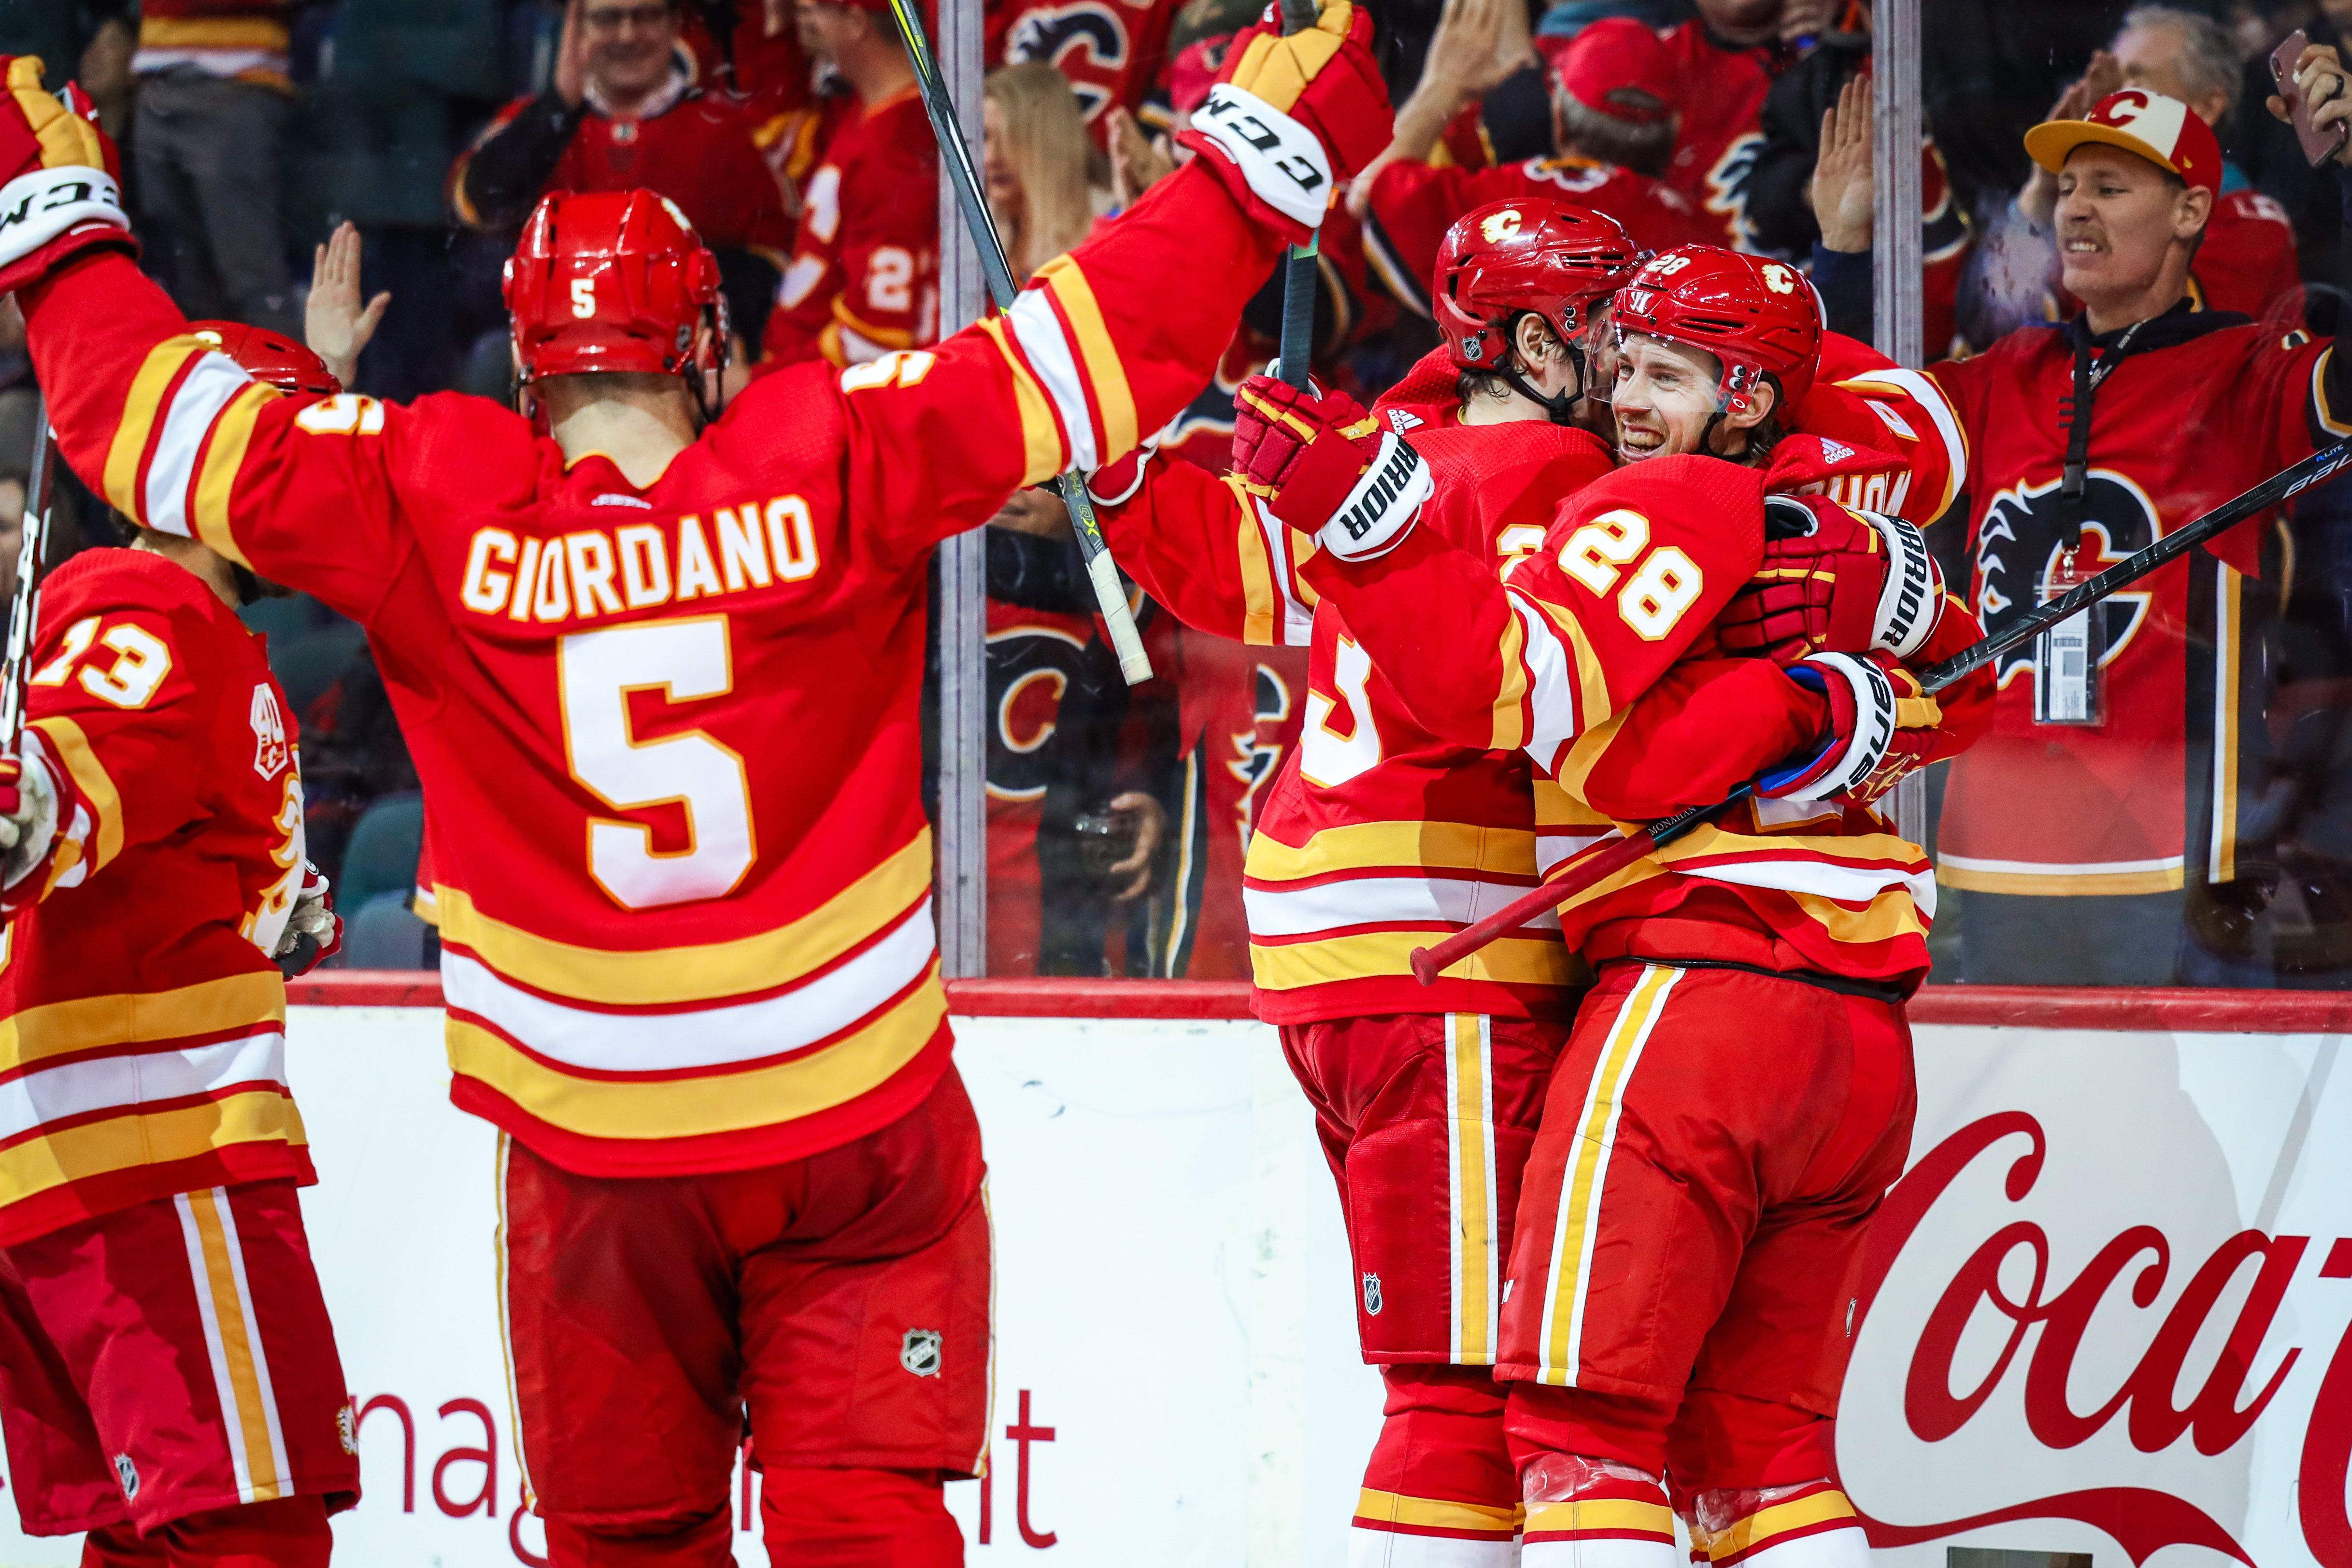 Jan 11, 2020; Calgary, Alberta, CAN; Calgary Flames center Elias Lindholm (28) celebrates his goal with teammates against the Edmonton Oilers during the third period at Scotiabank Saddledome. Calgary Flames won 4-3